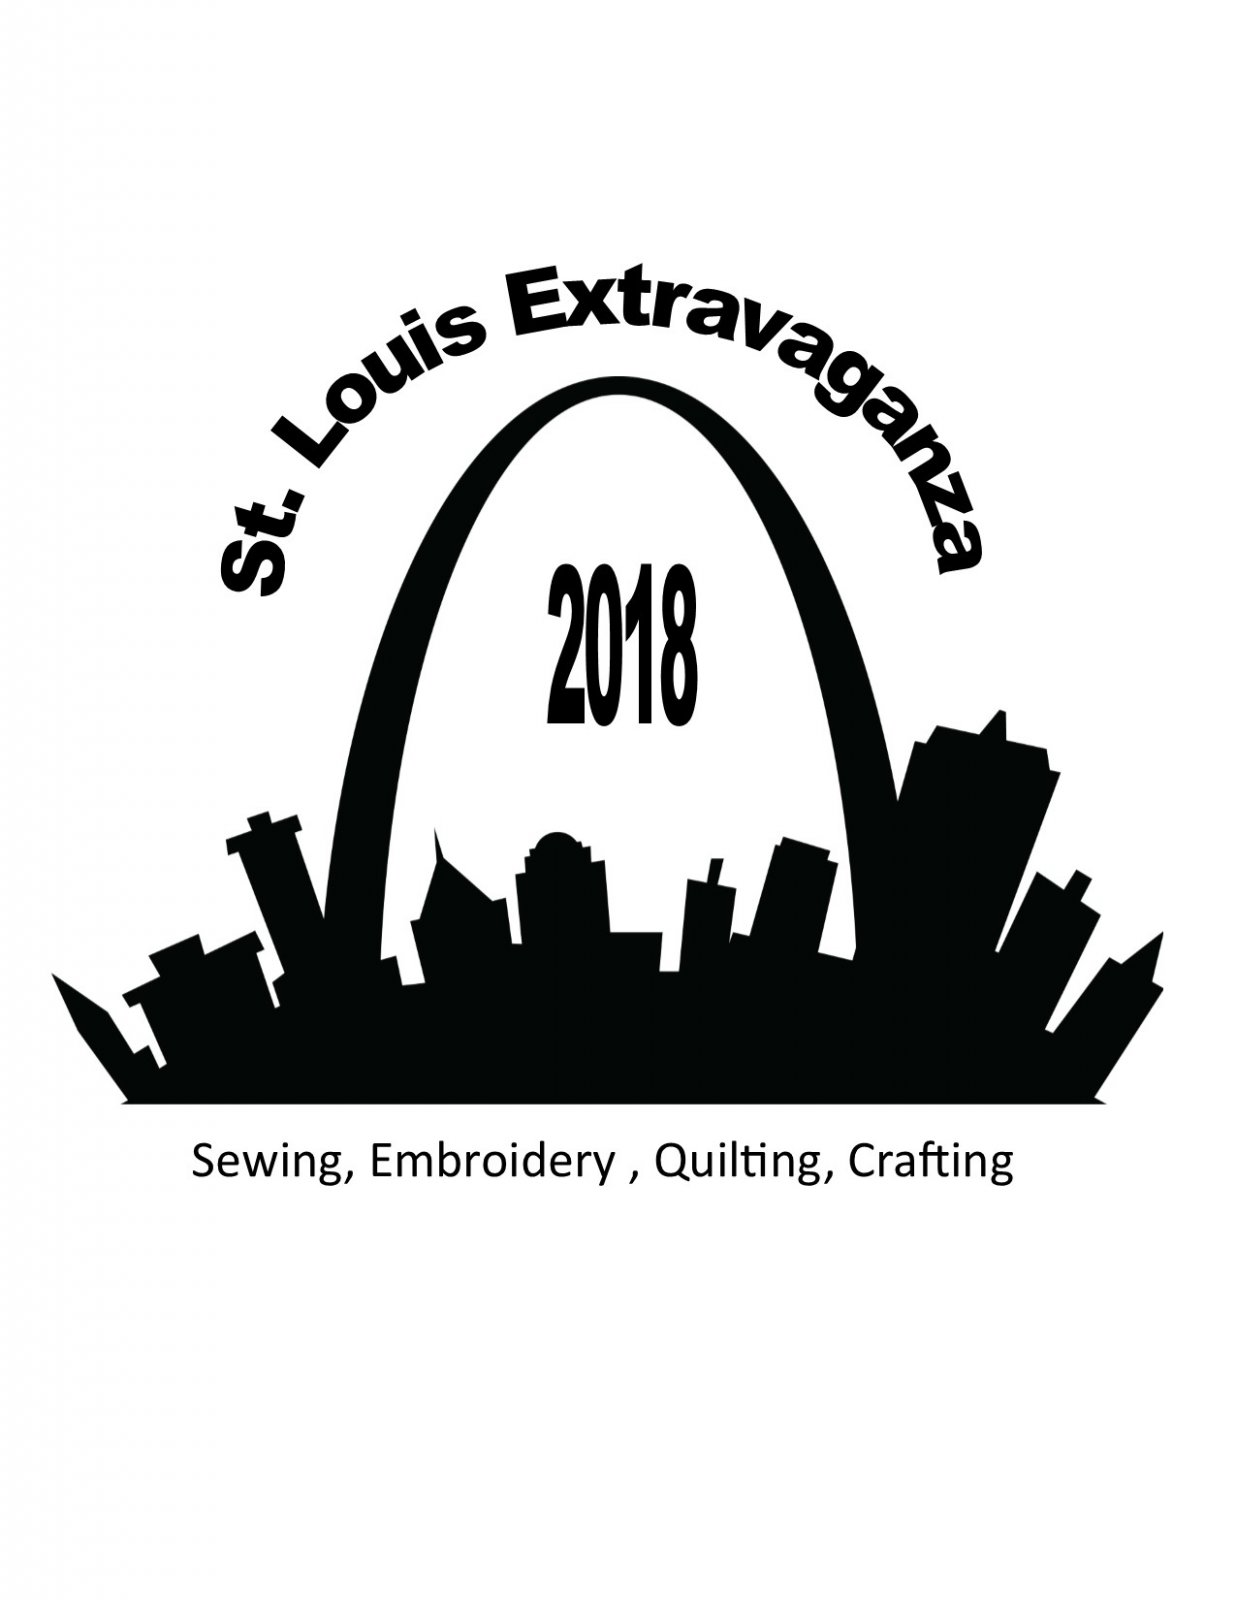 2018 Seqc Extravaganza Sewing Embroidery Quilting Crafting